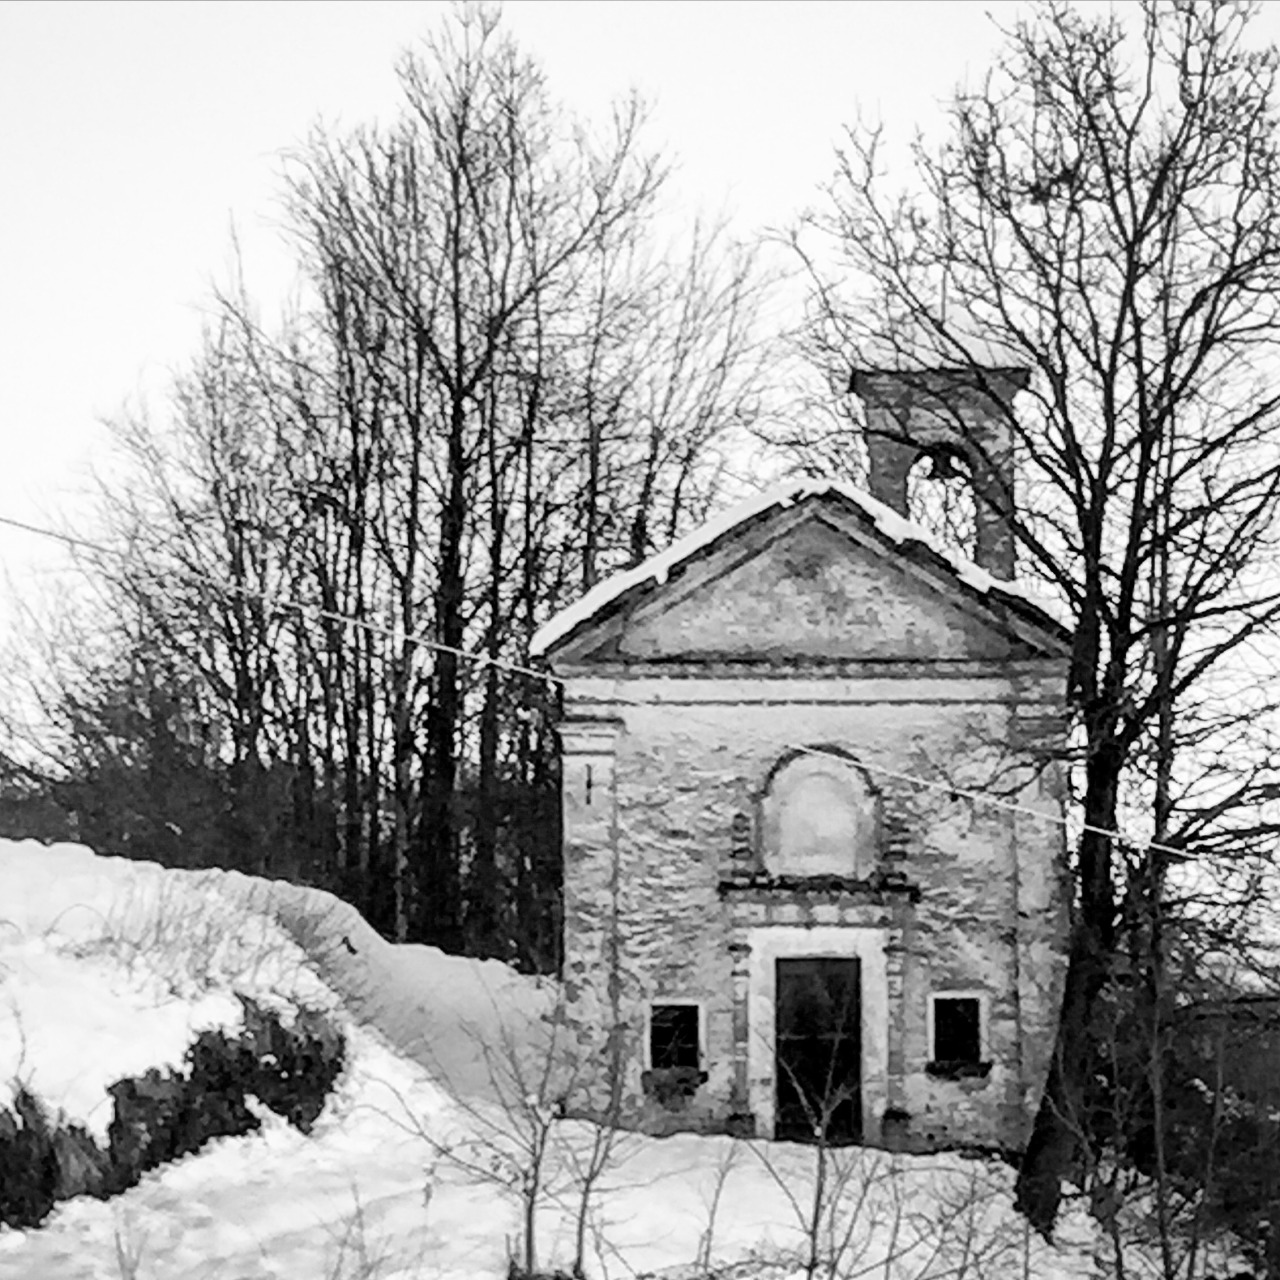 Abandoned, snow-draped church in the hills of Piedmont, Italy.